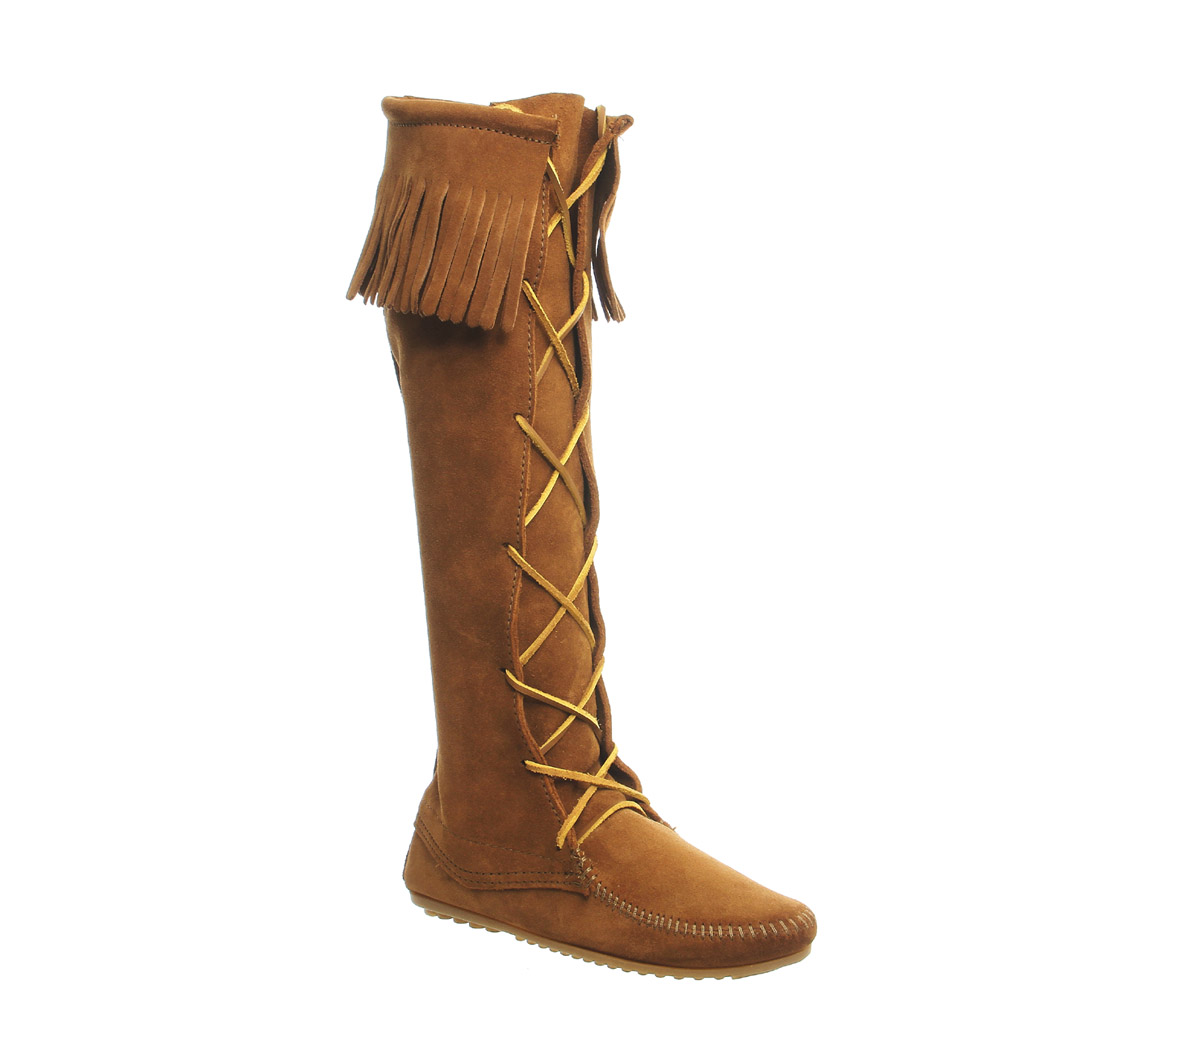 womens minnetonka brown suede knee high boots uk size 6